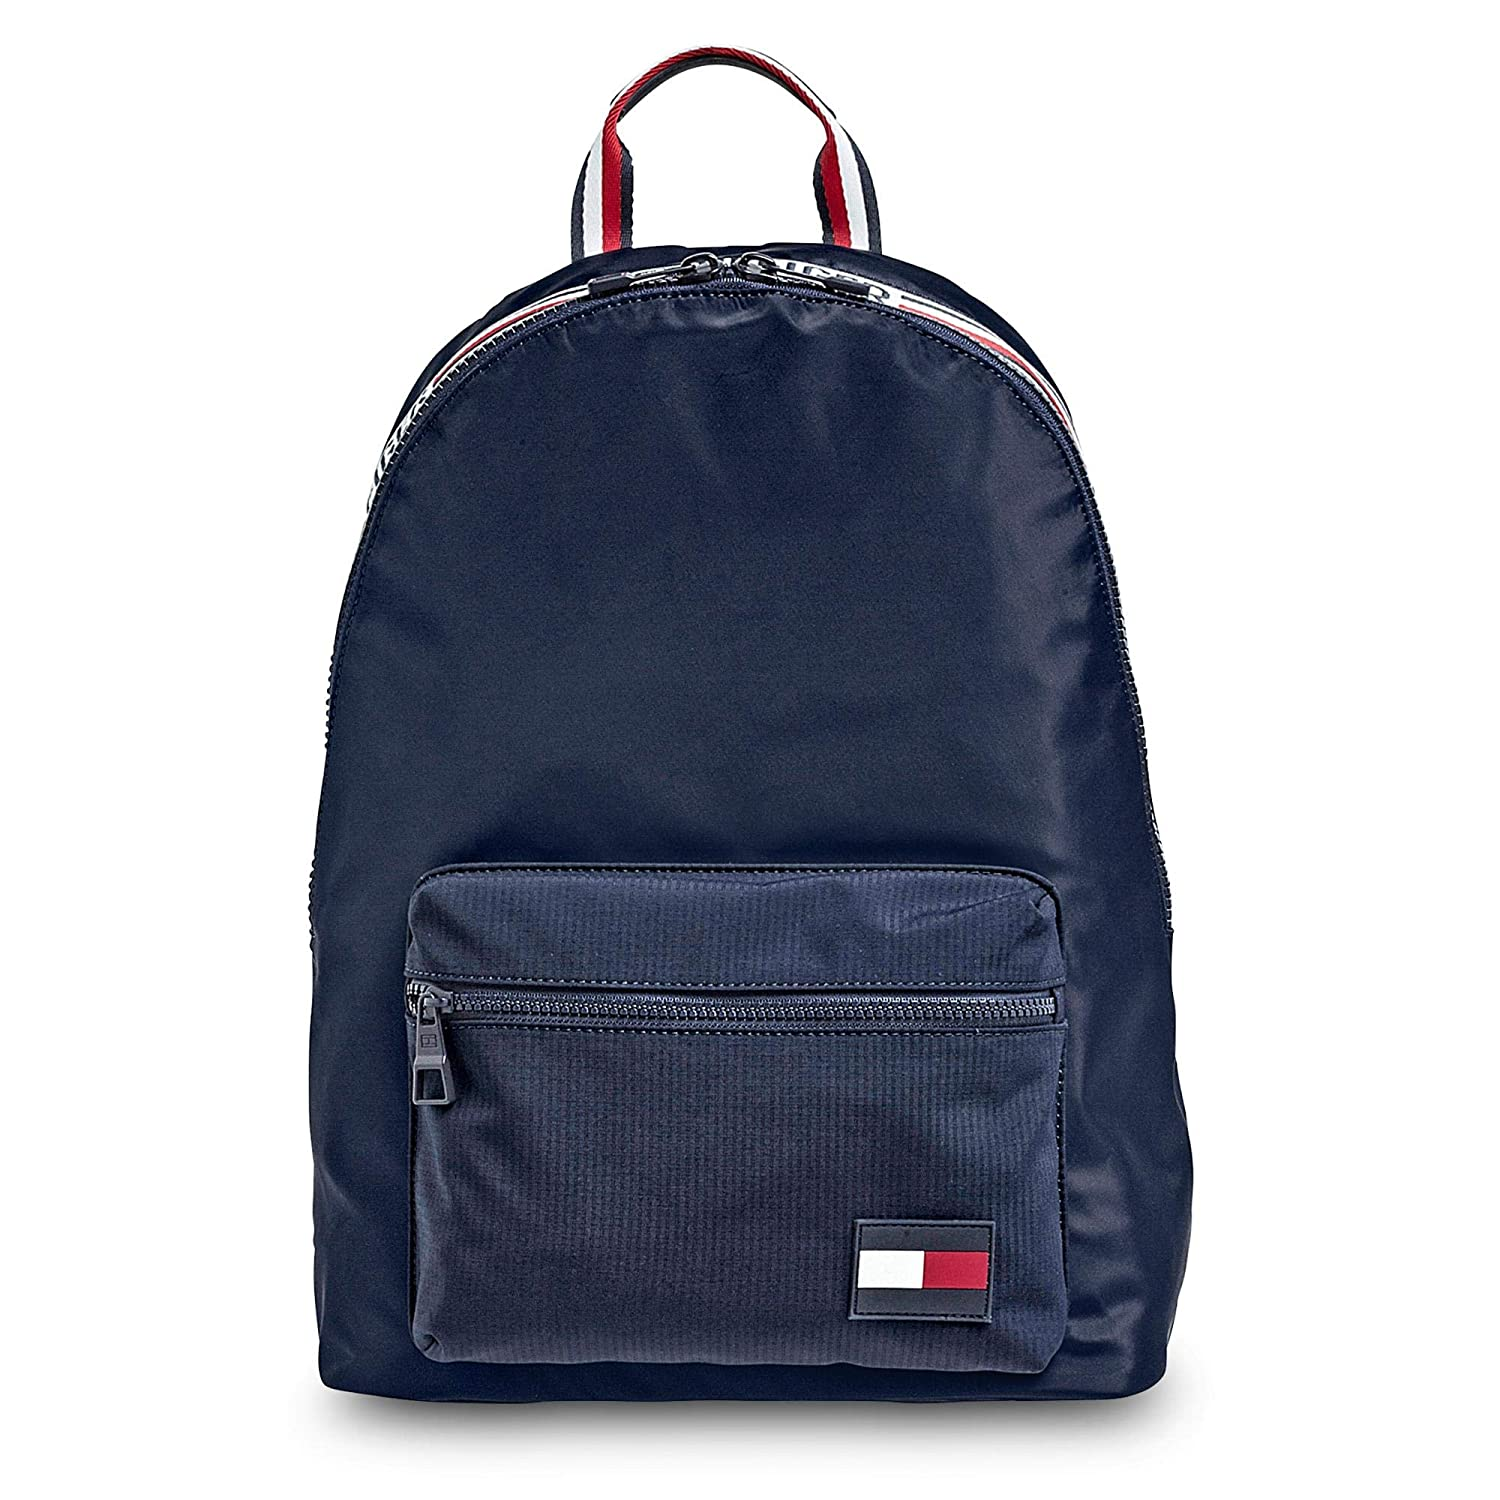 7702ea8a Tommy Hilfiger Men's Signature Tape Backpack One Size Navy: Amazon.co.uk:  Clothing